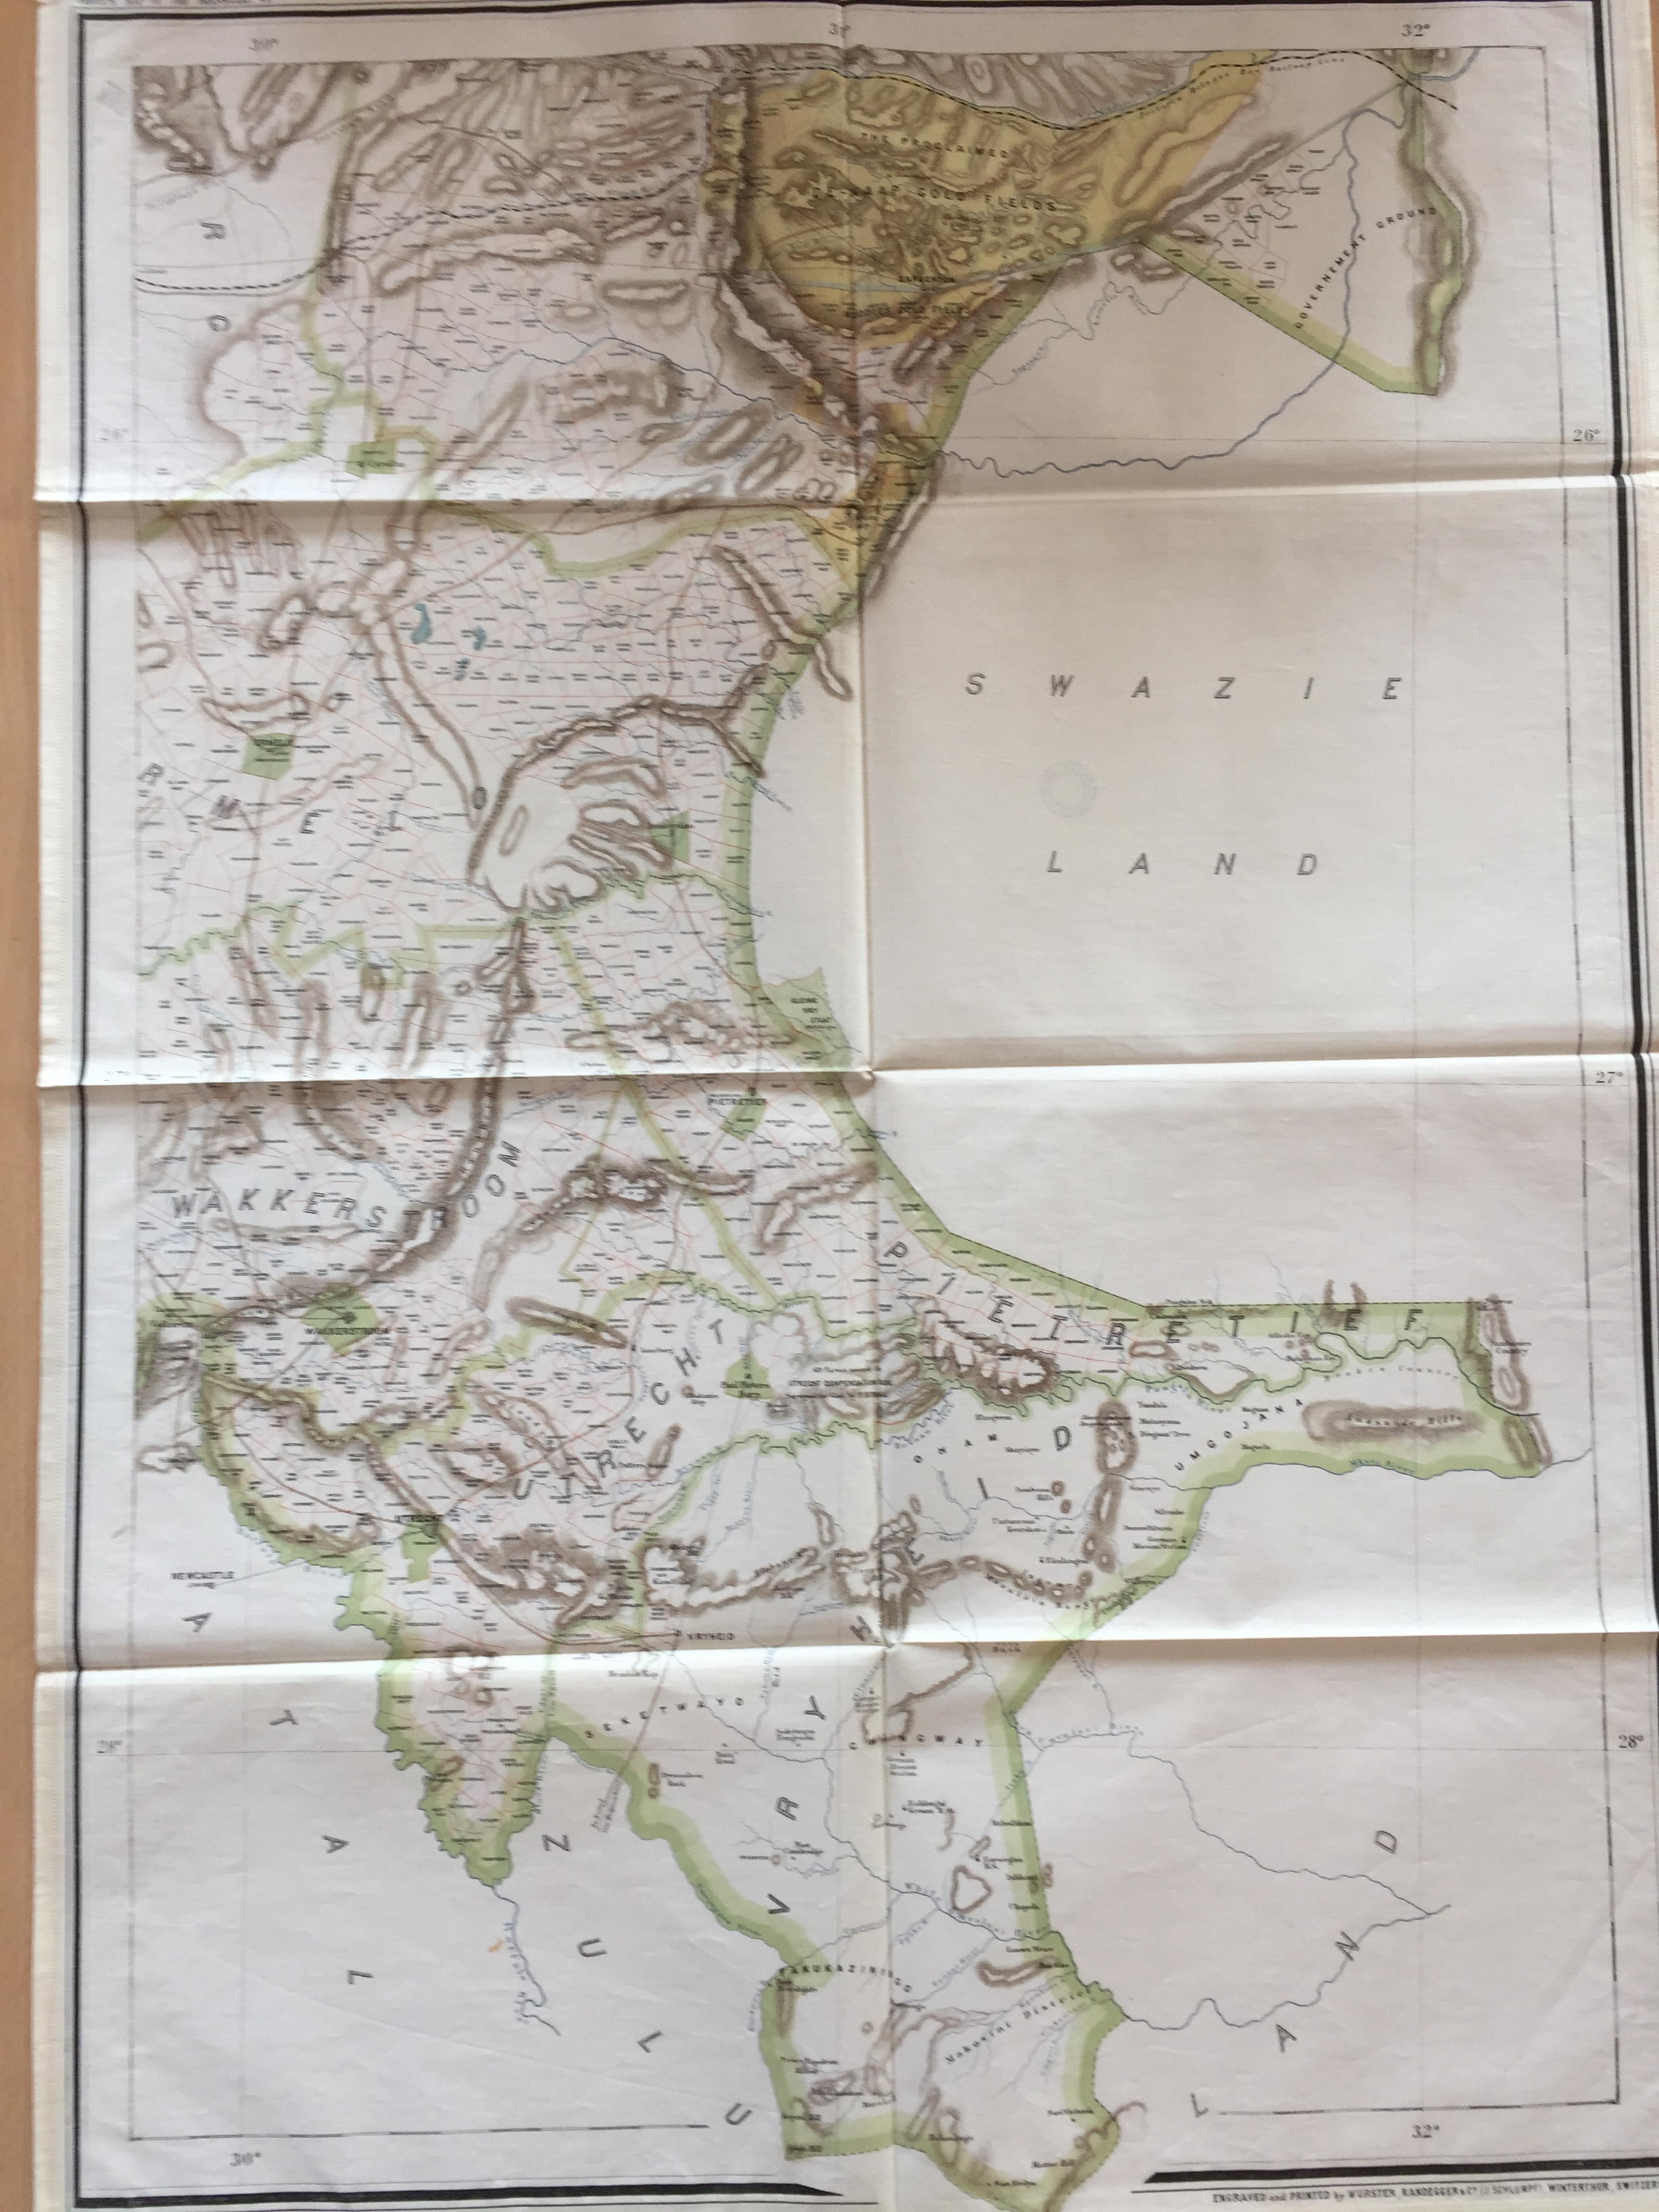 Downside Archive Collections South African Maps